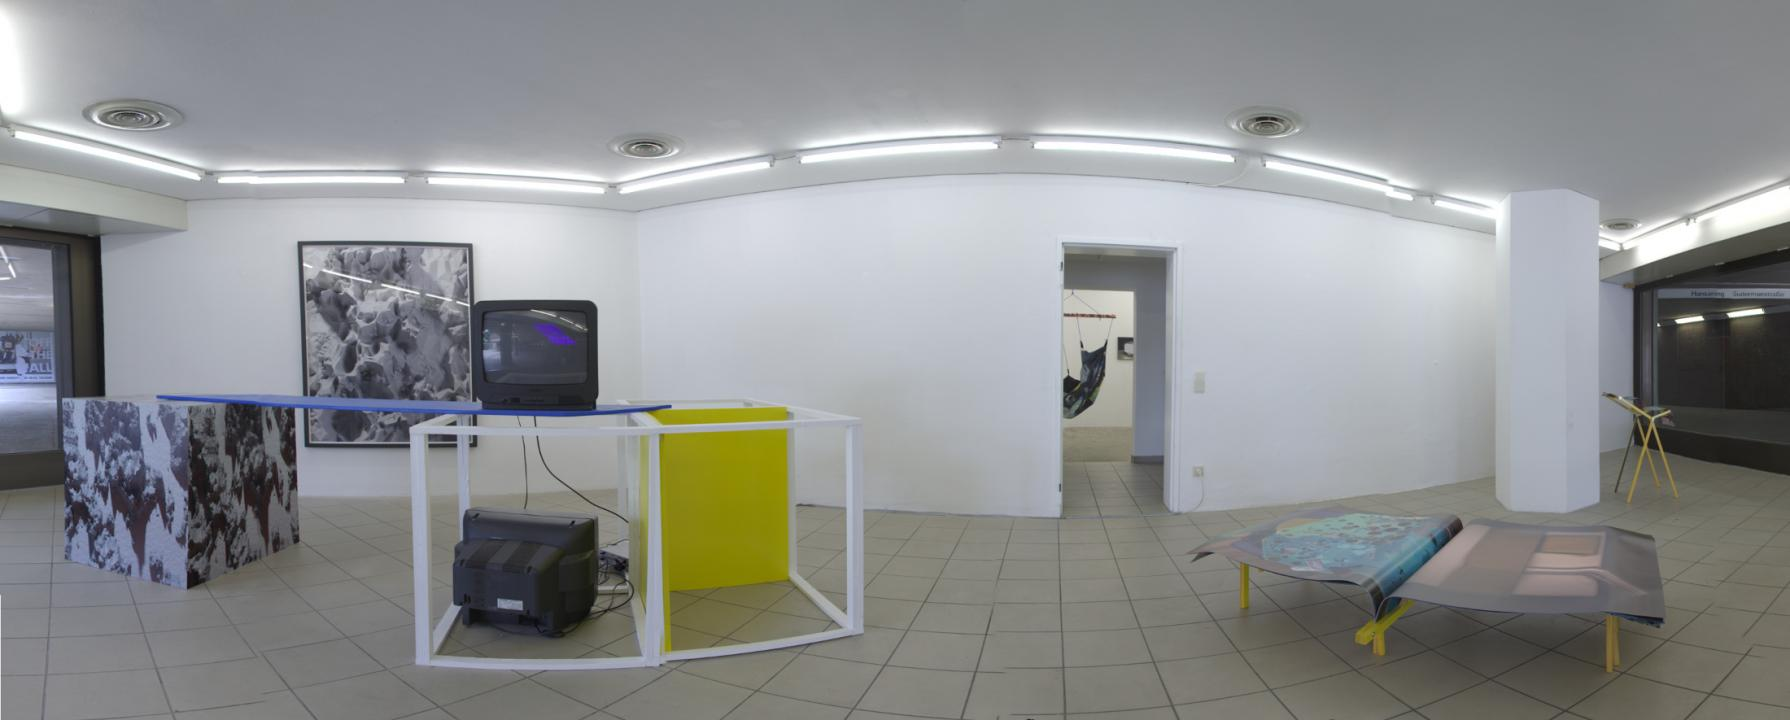 metafurnish, Installation View